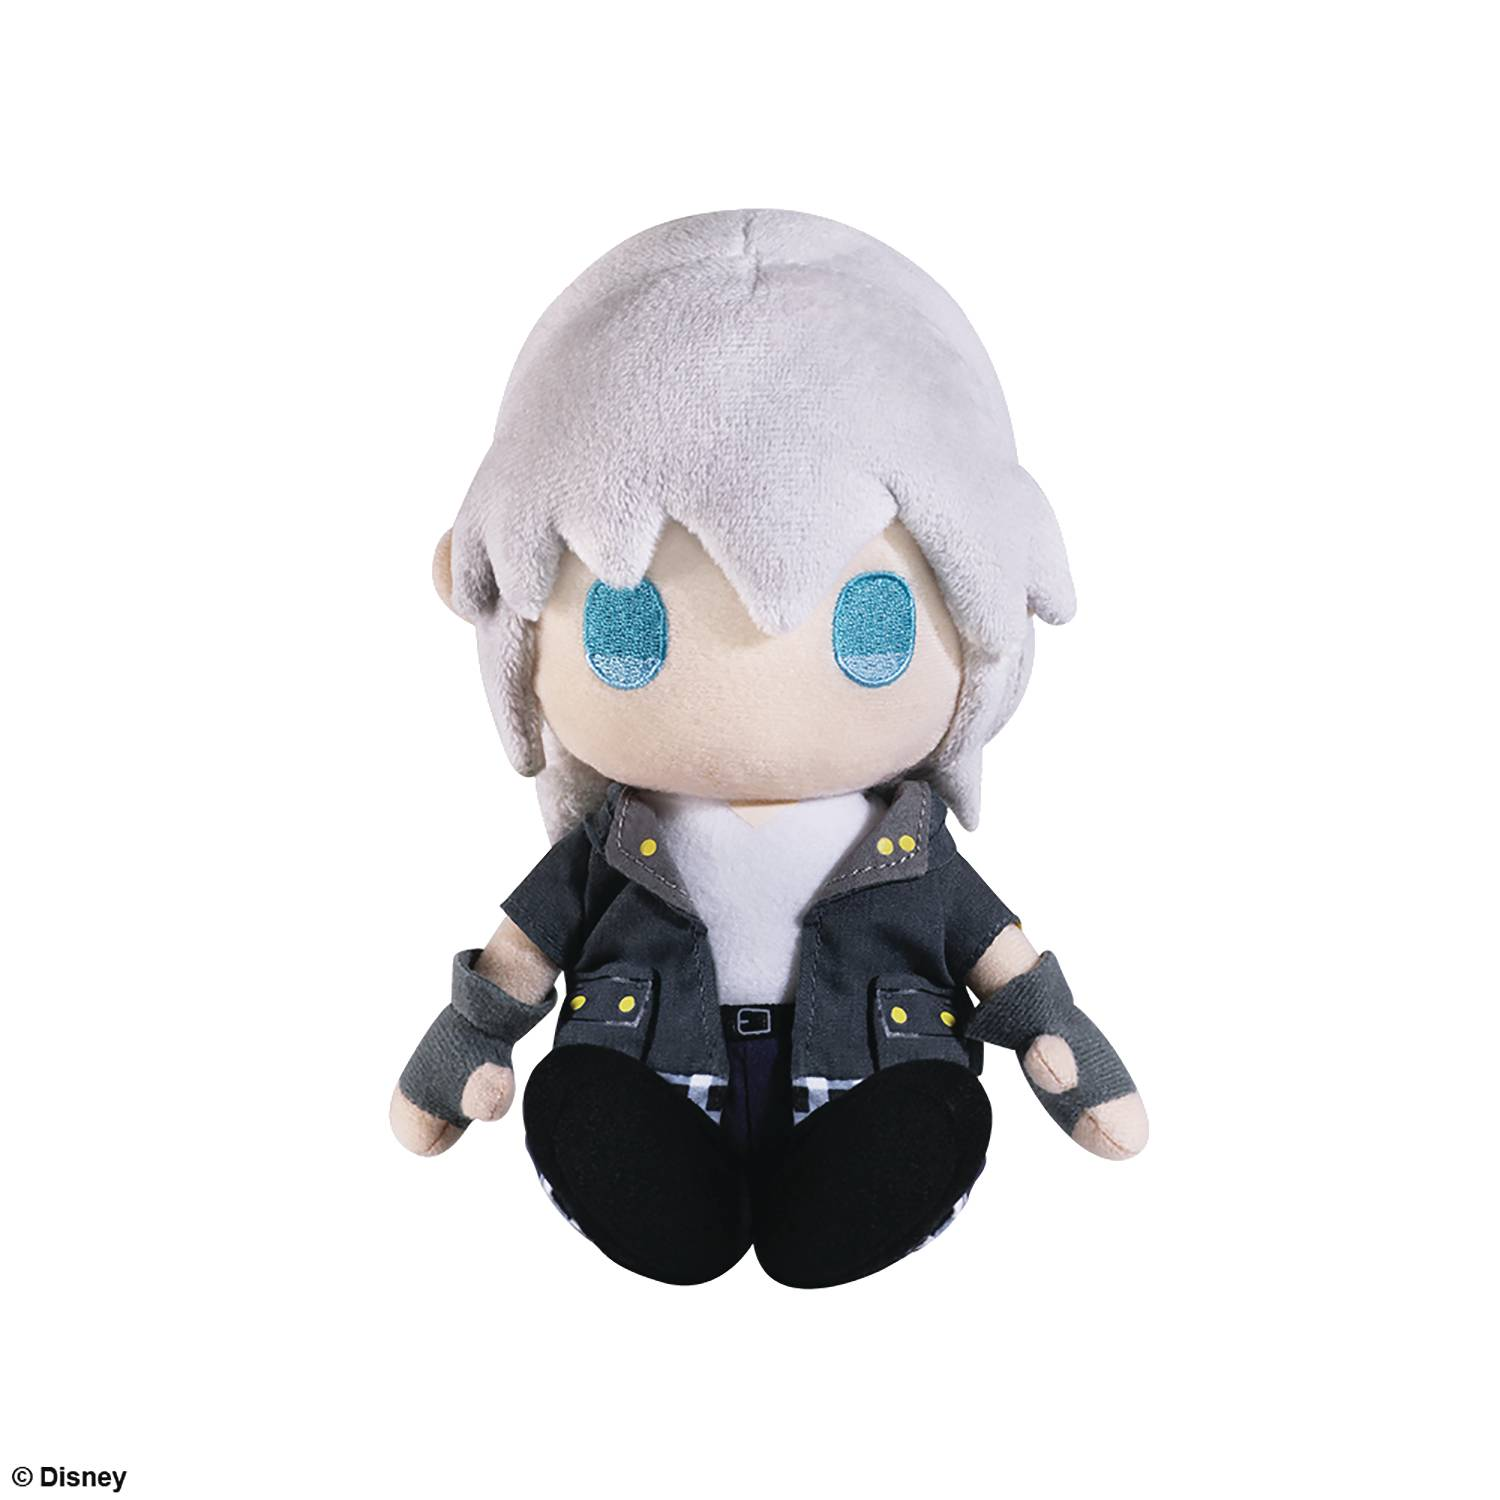 KINGDOM HEARTS III RIKU PLUSH